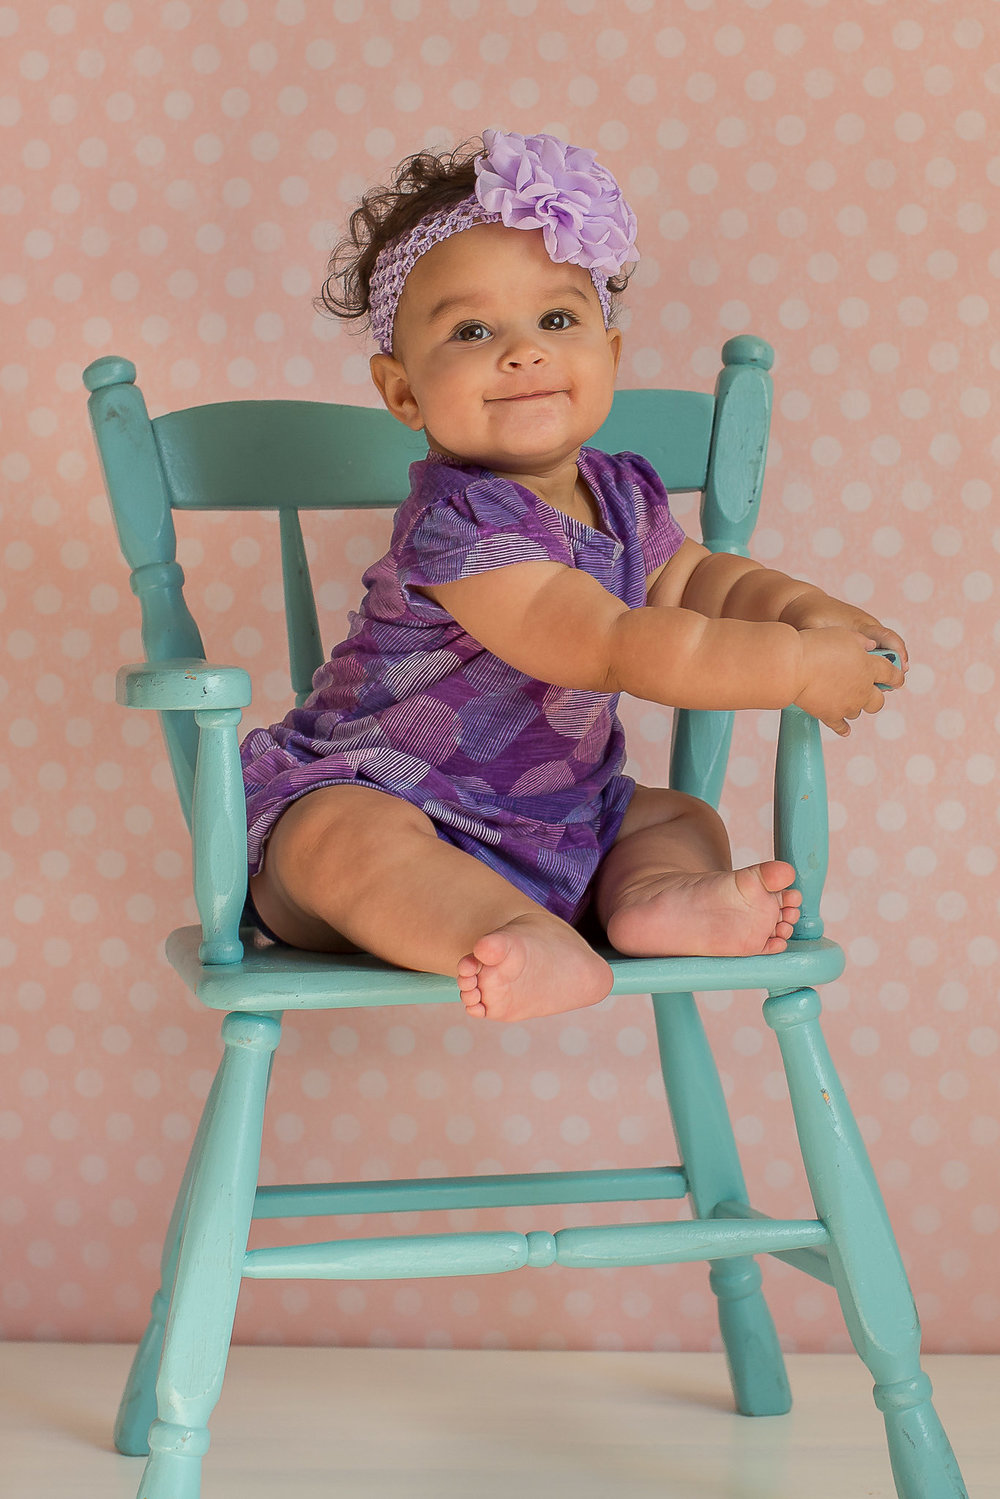 sitter-session-purple-dress-teal-chair.jpg